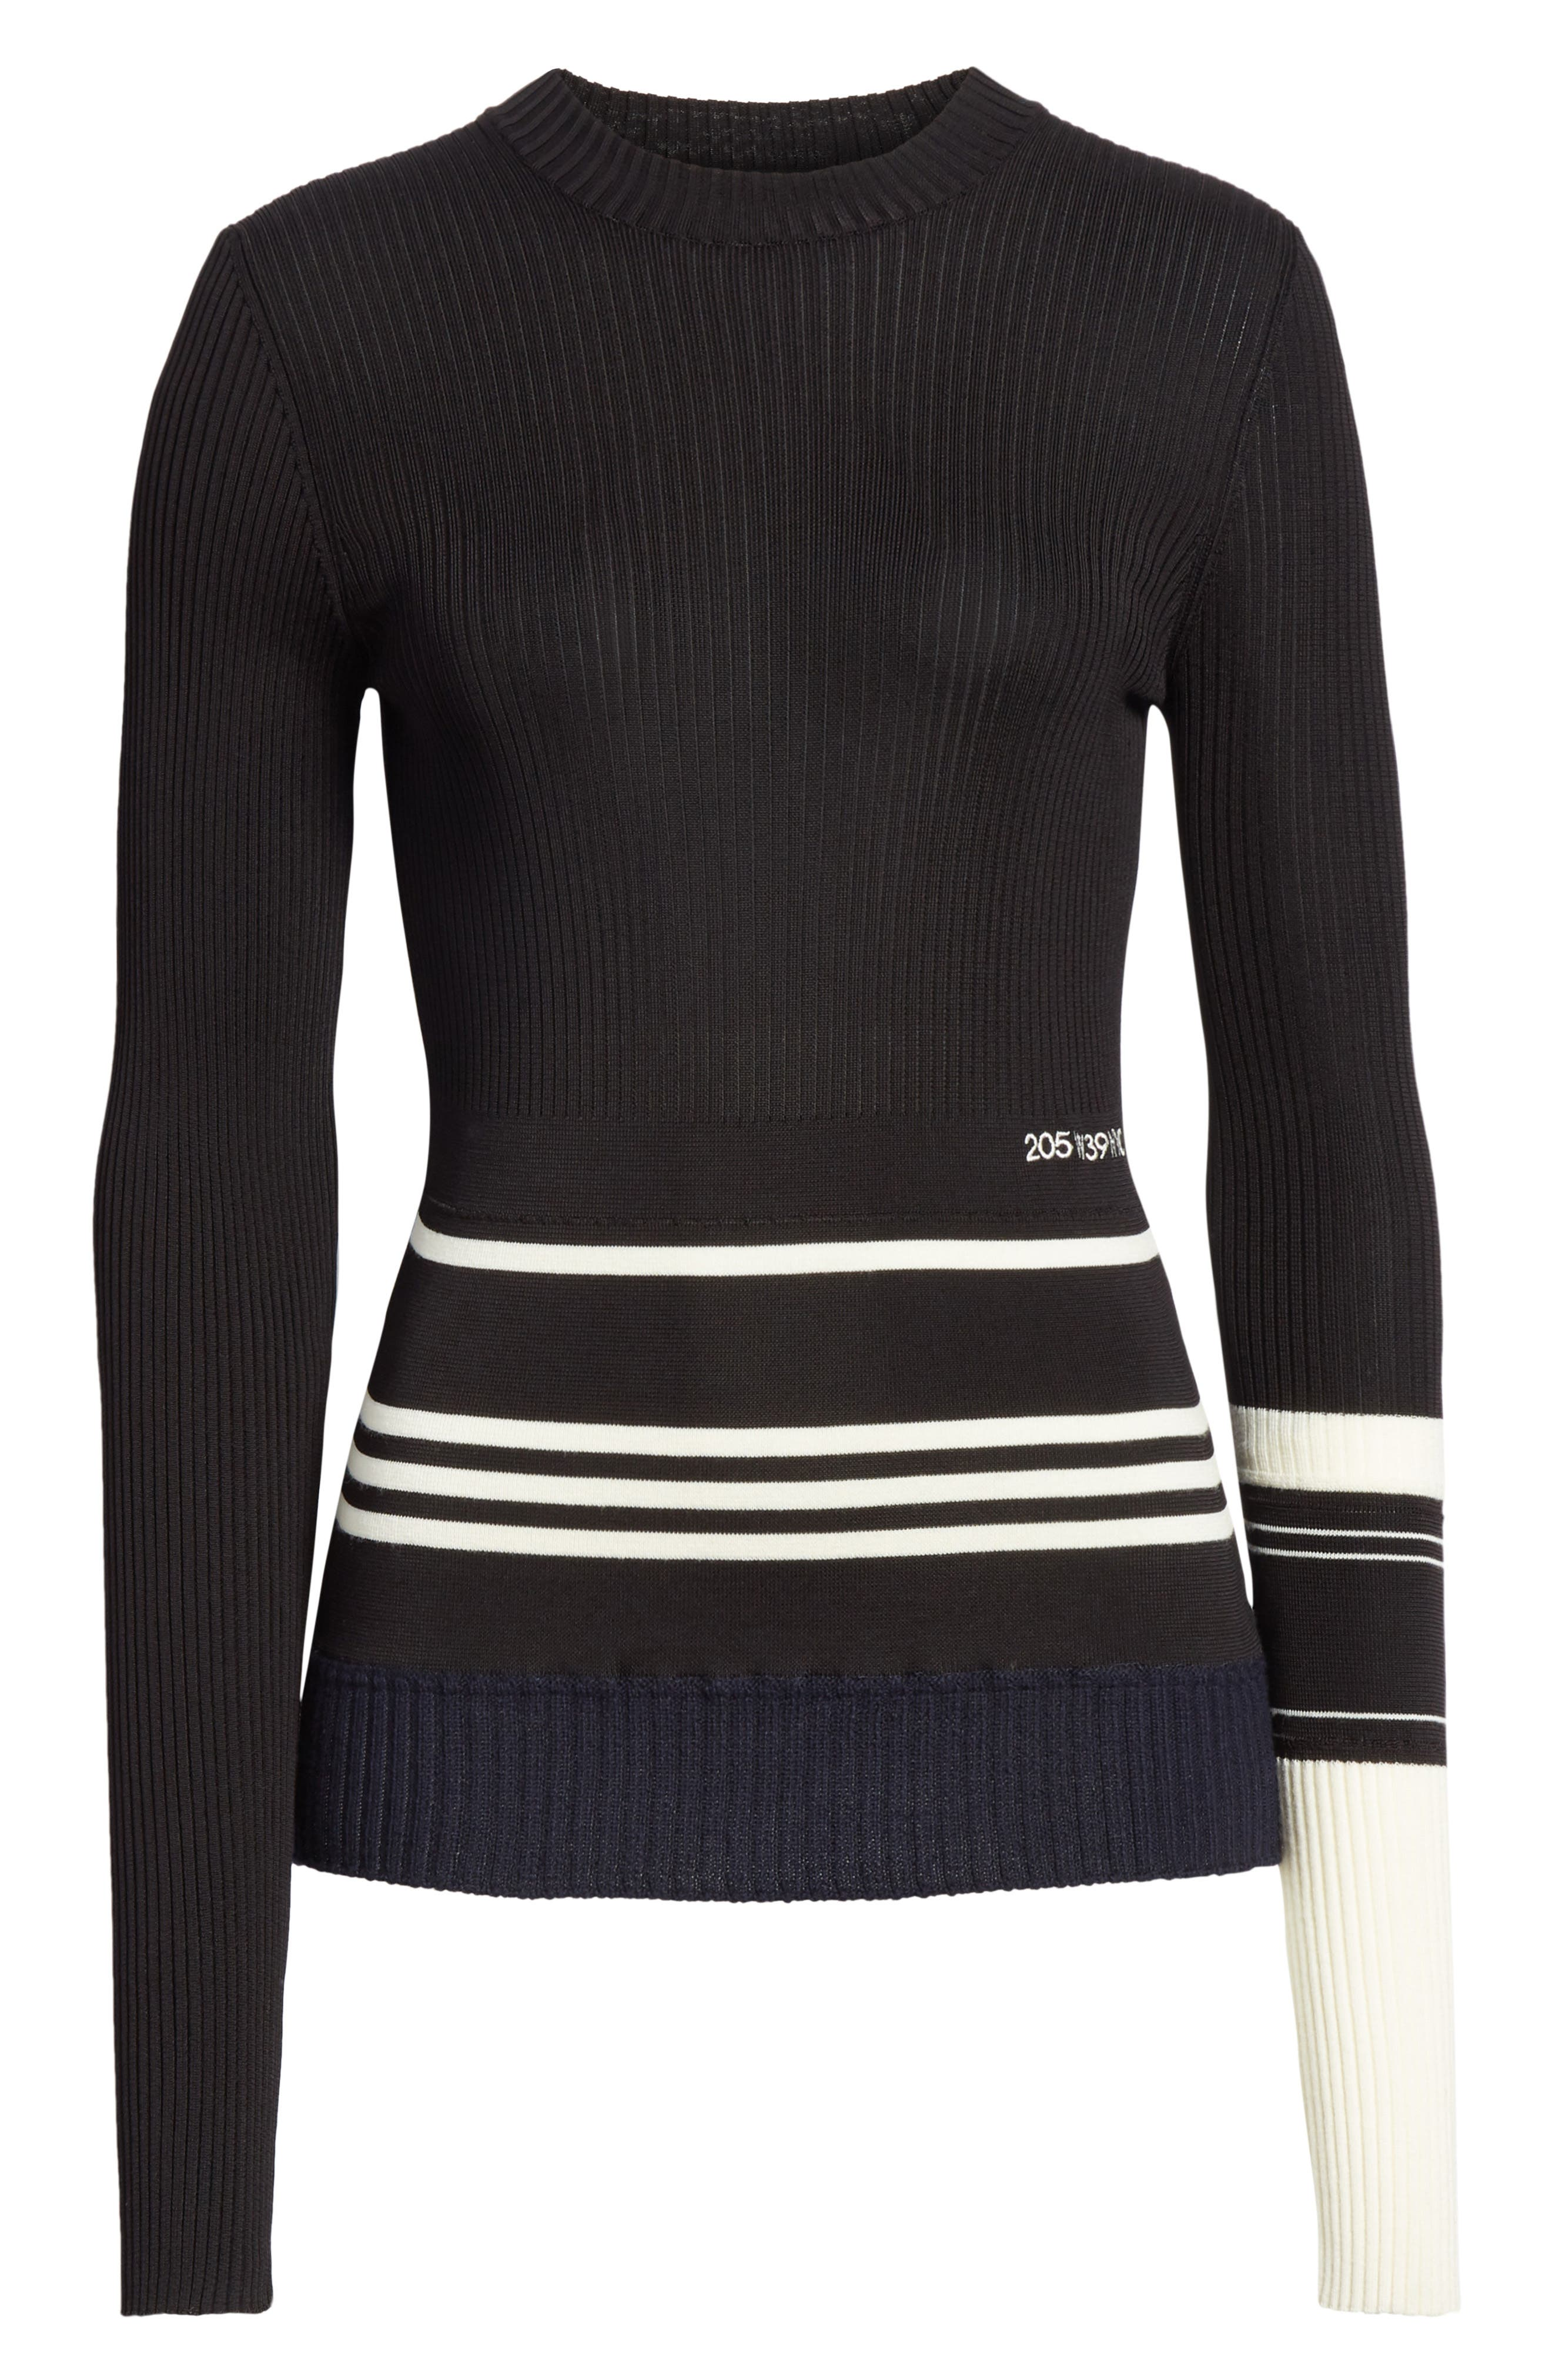 Varsity Stripe Colorblock Sweater,                             Alternate thumbnail 7, color,                             BLACK IVORY NAVY